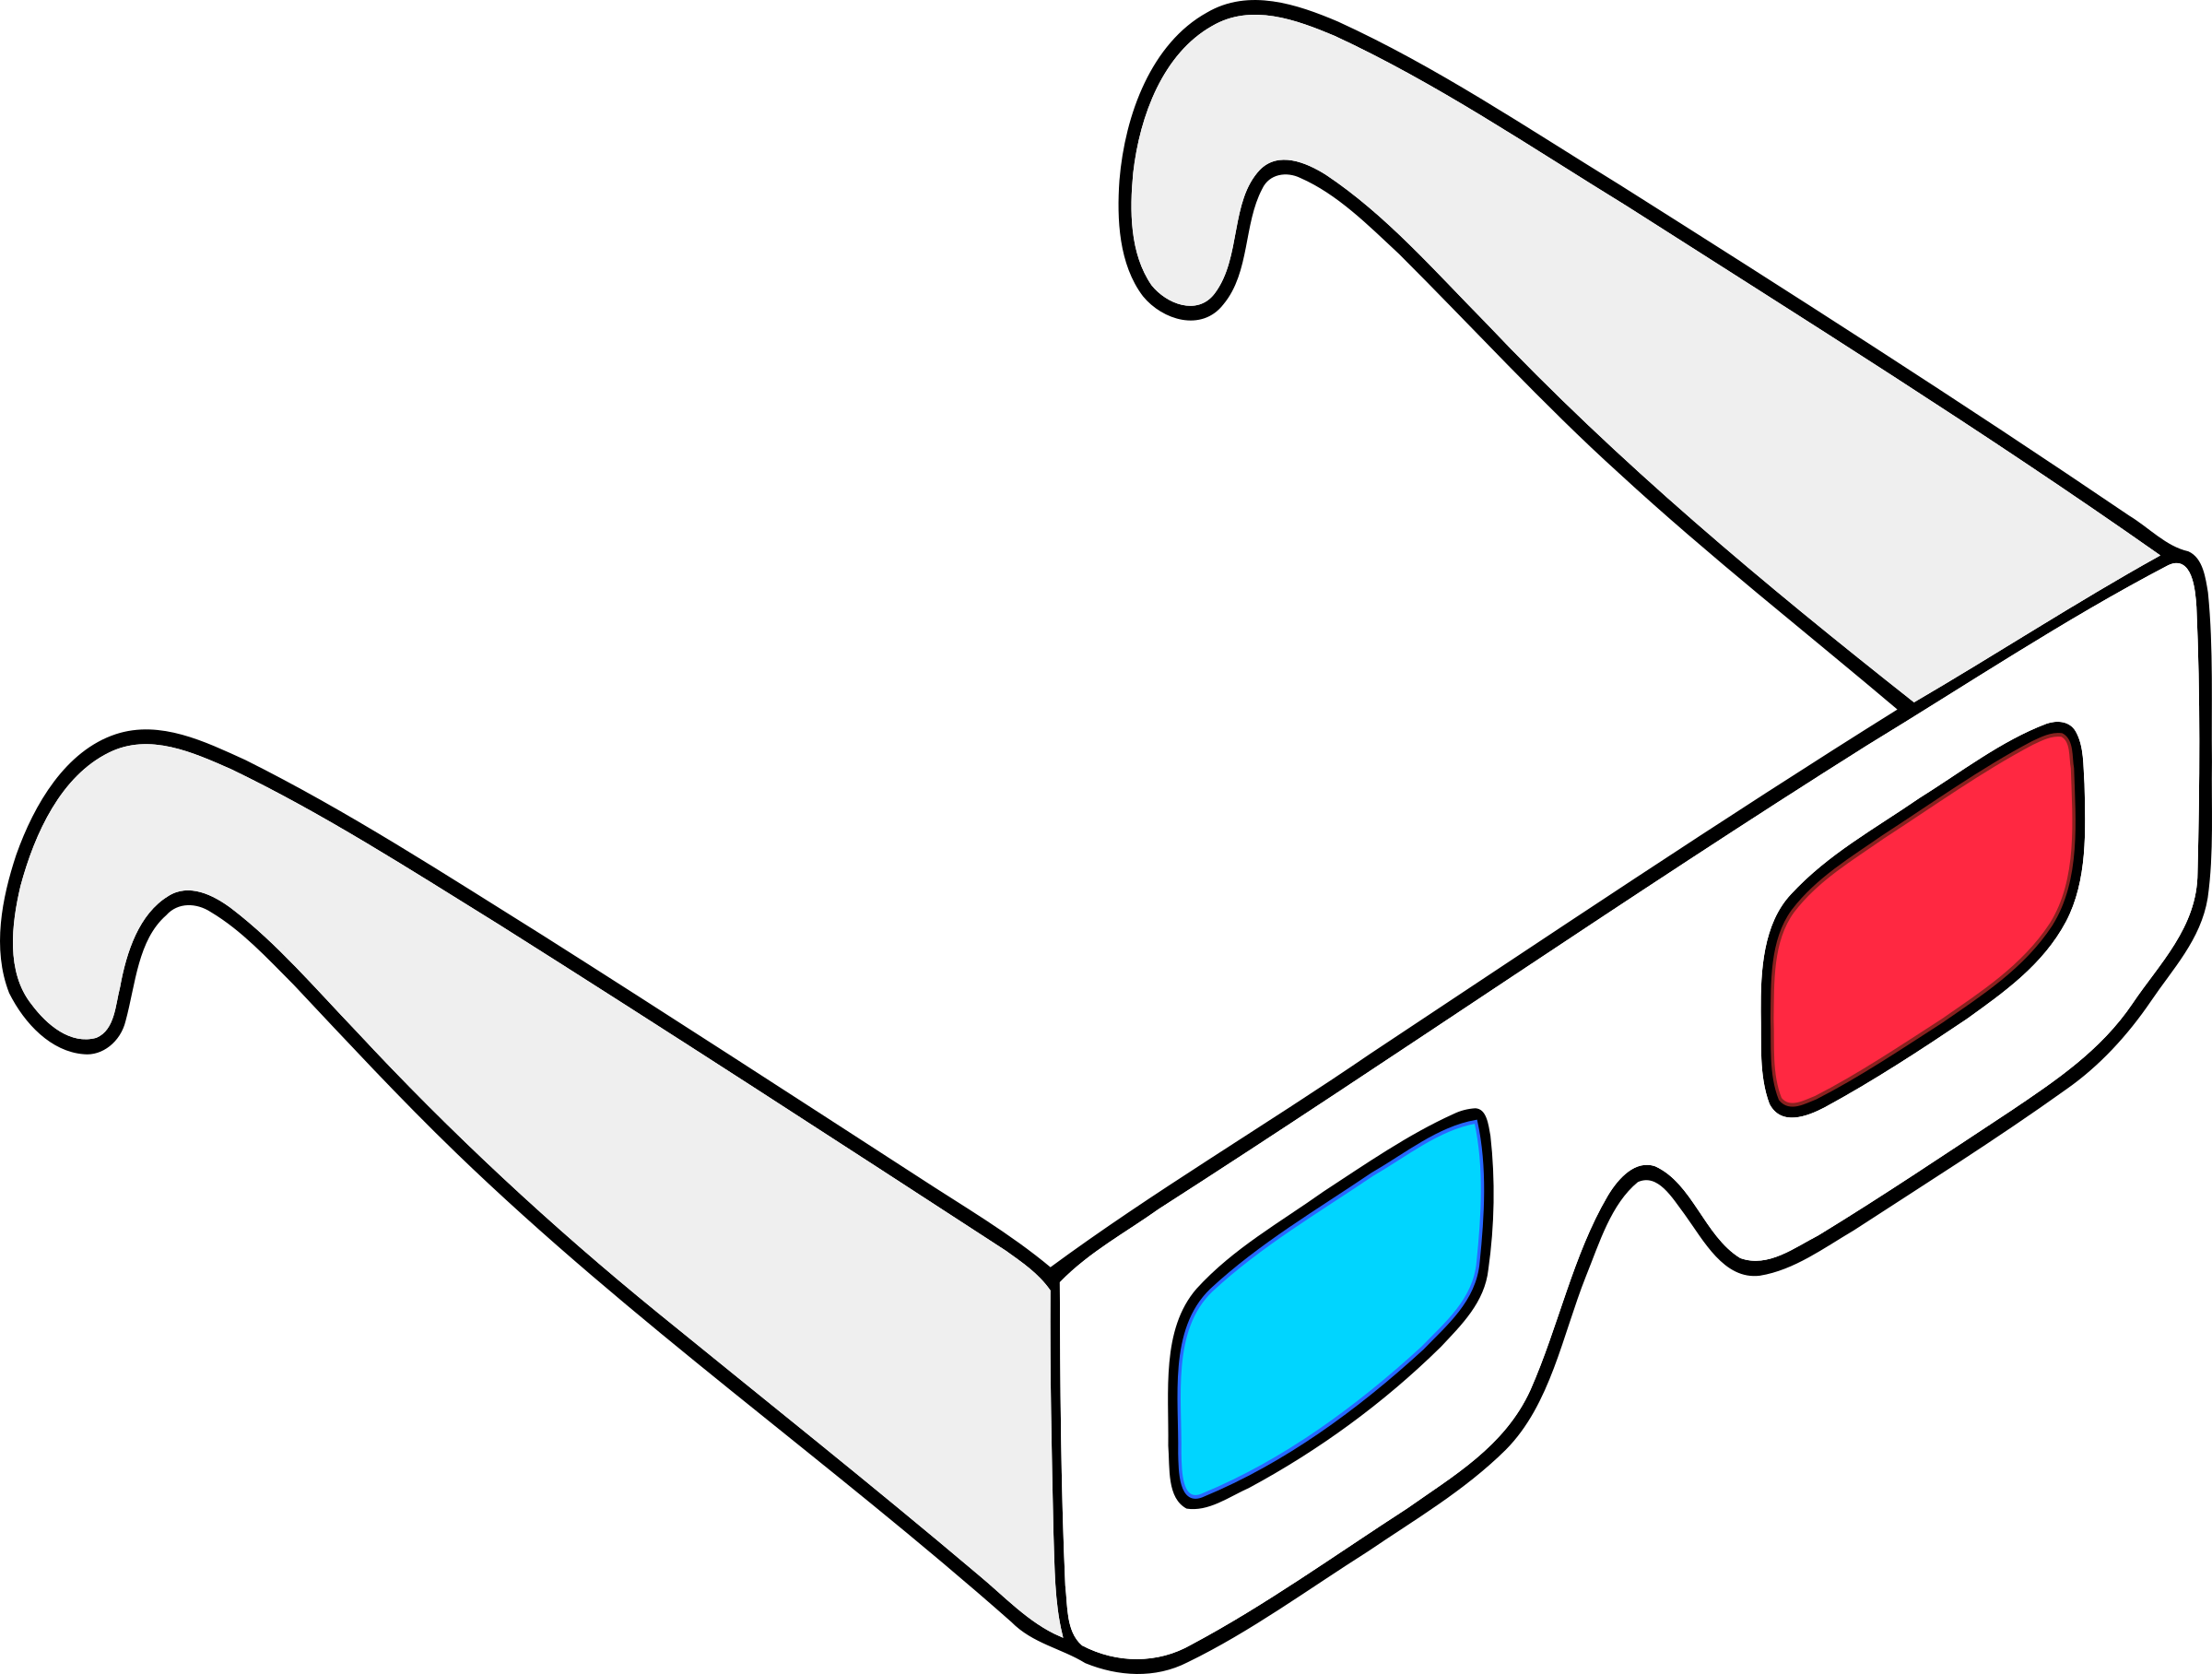 Anaglyph Glasses by j4p4n